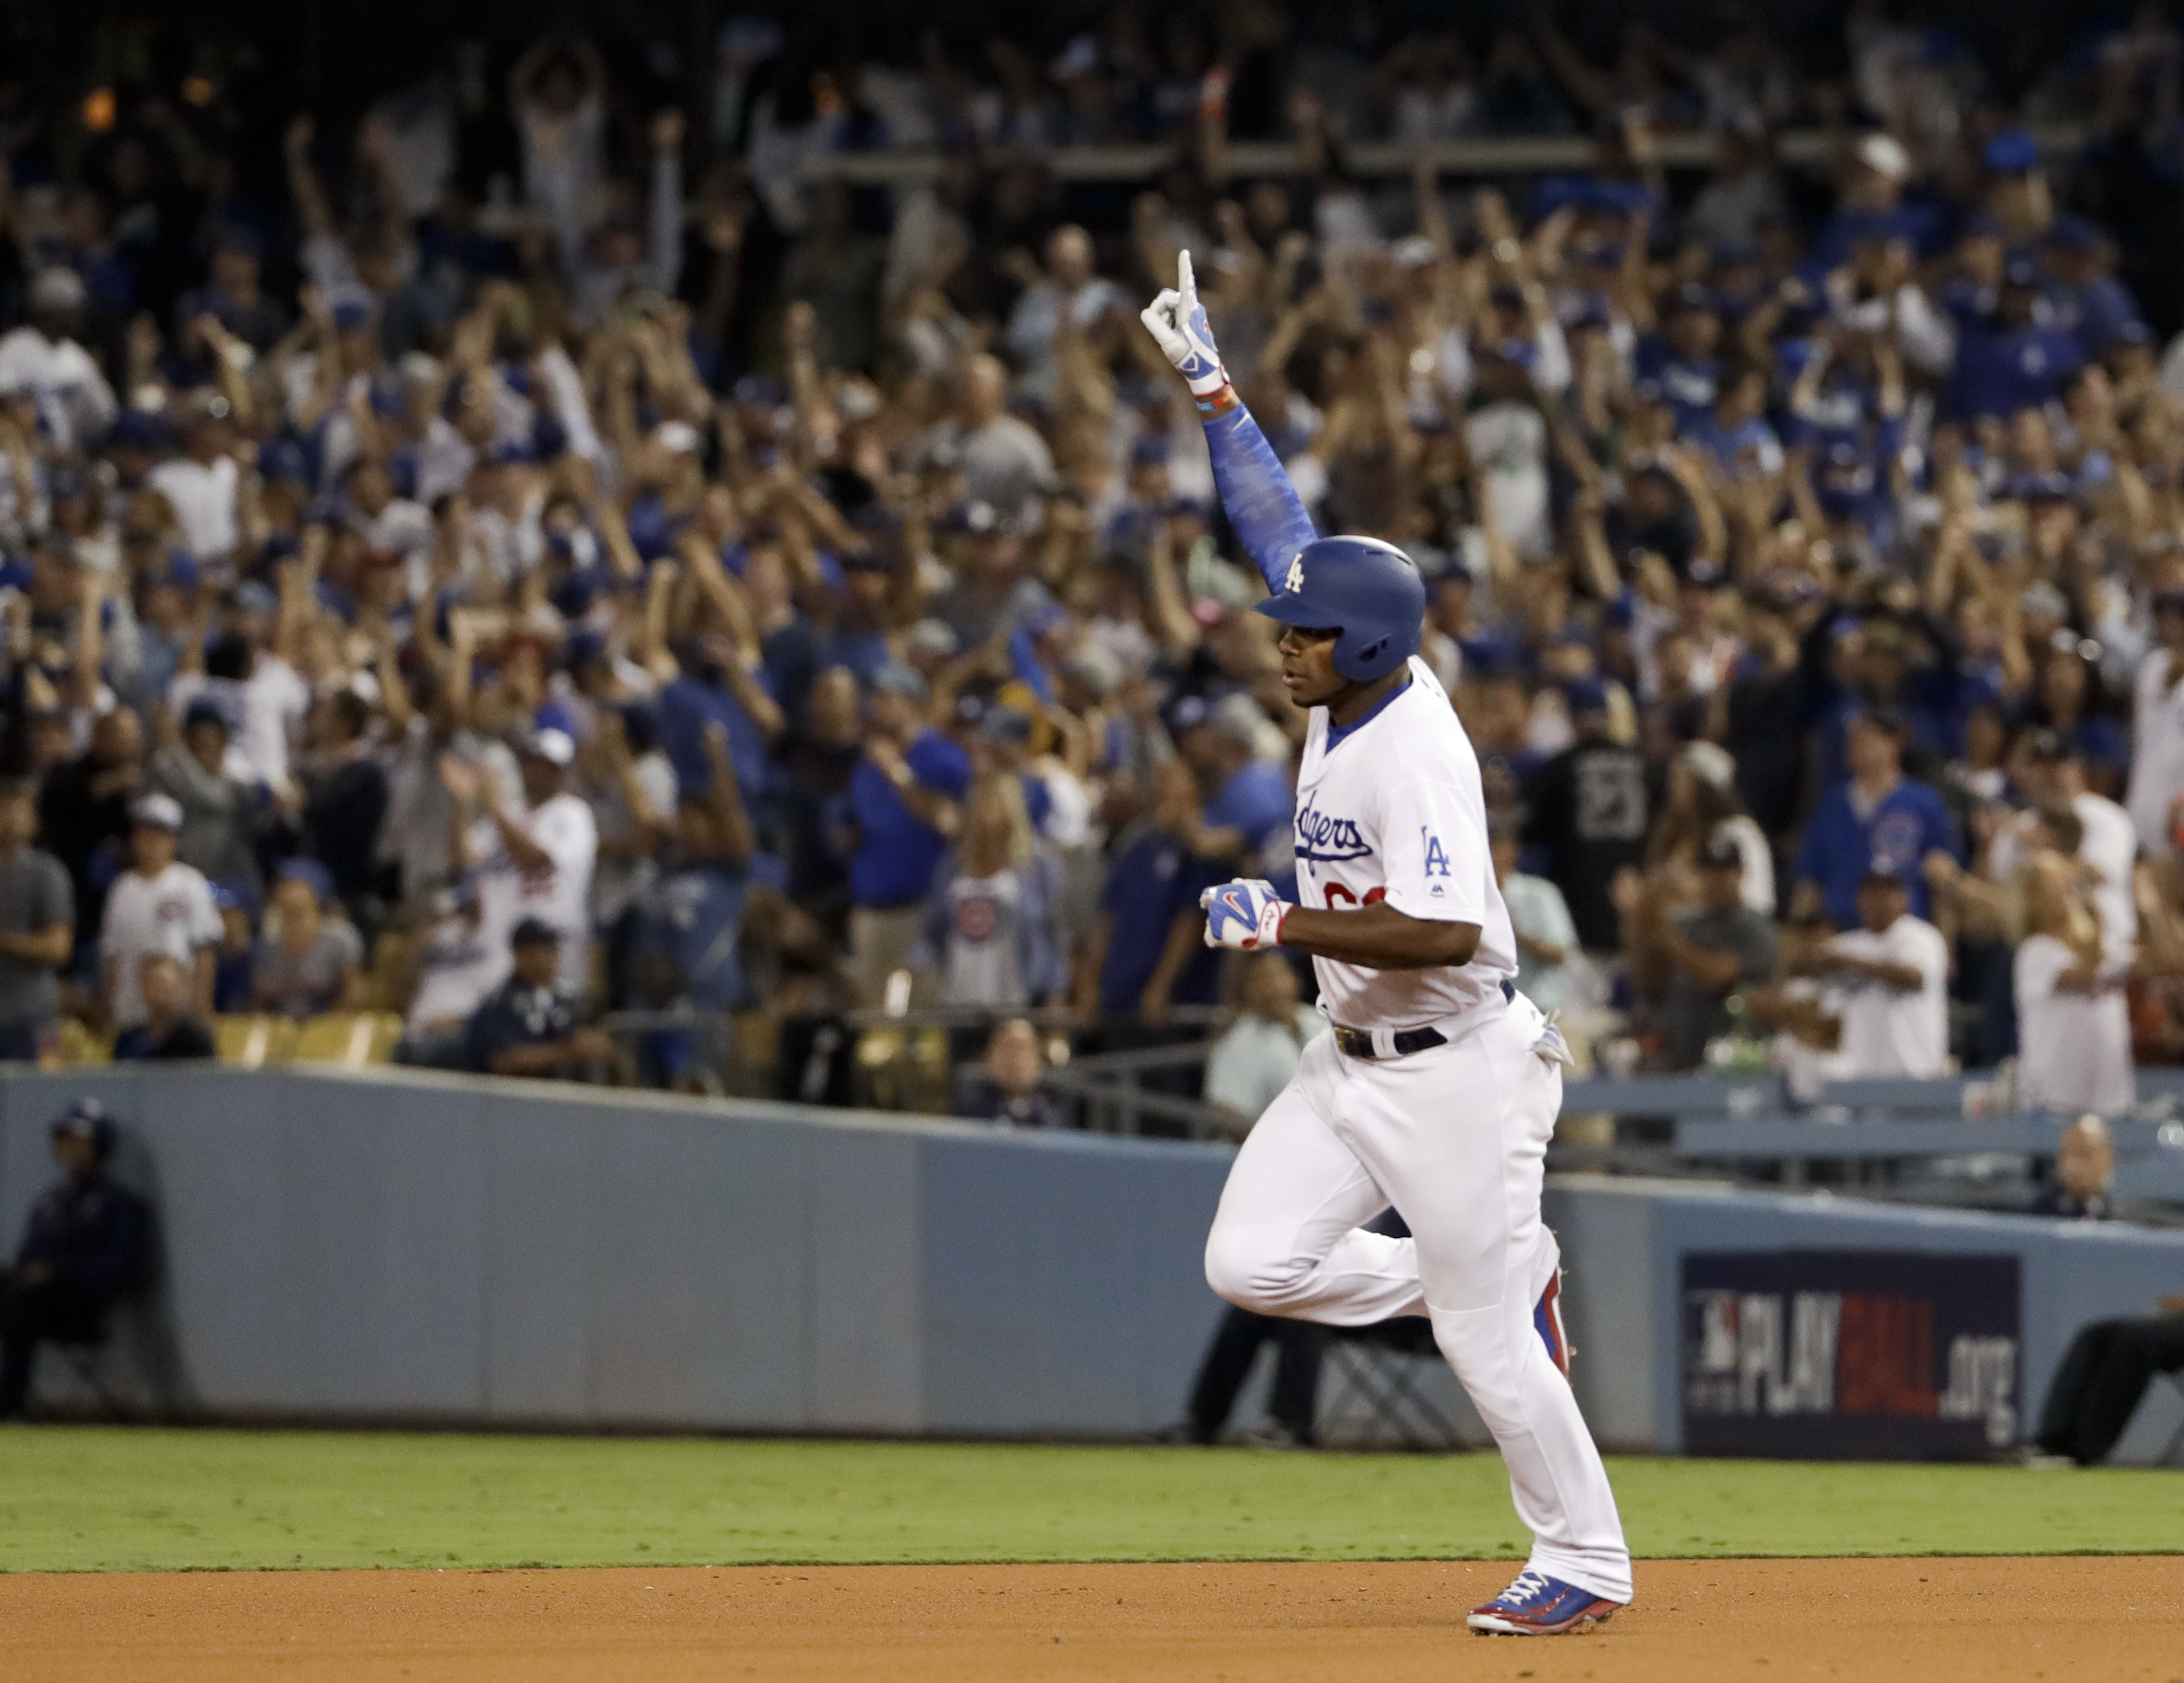 Yasiel Puig may have called his shot before double in NLCS Game 1